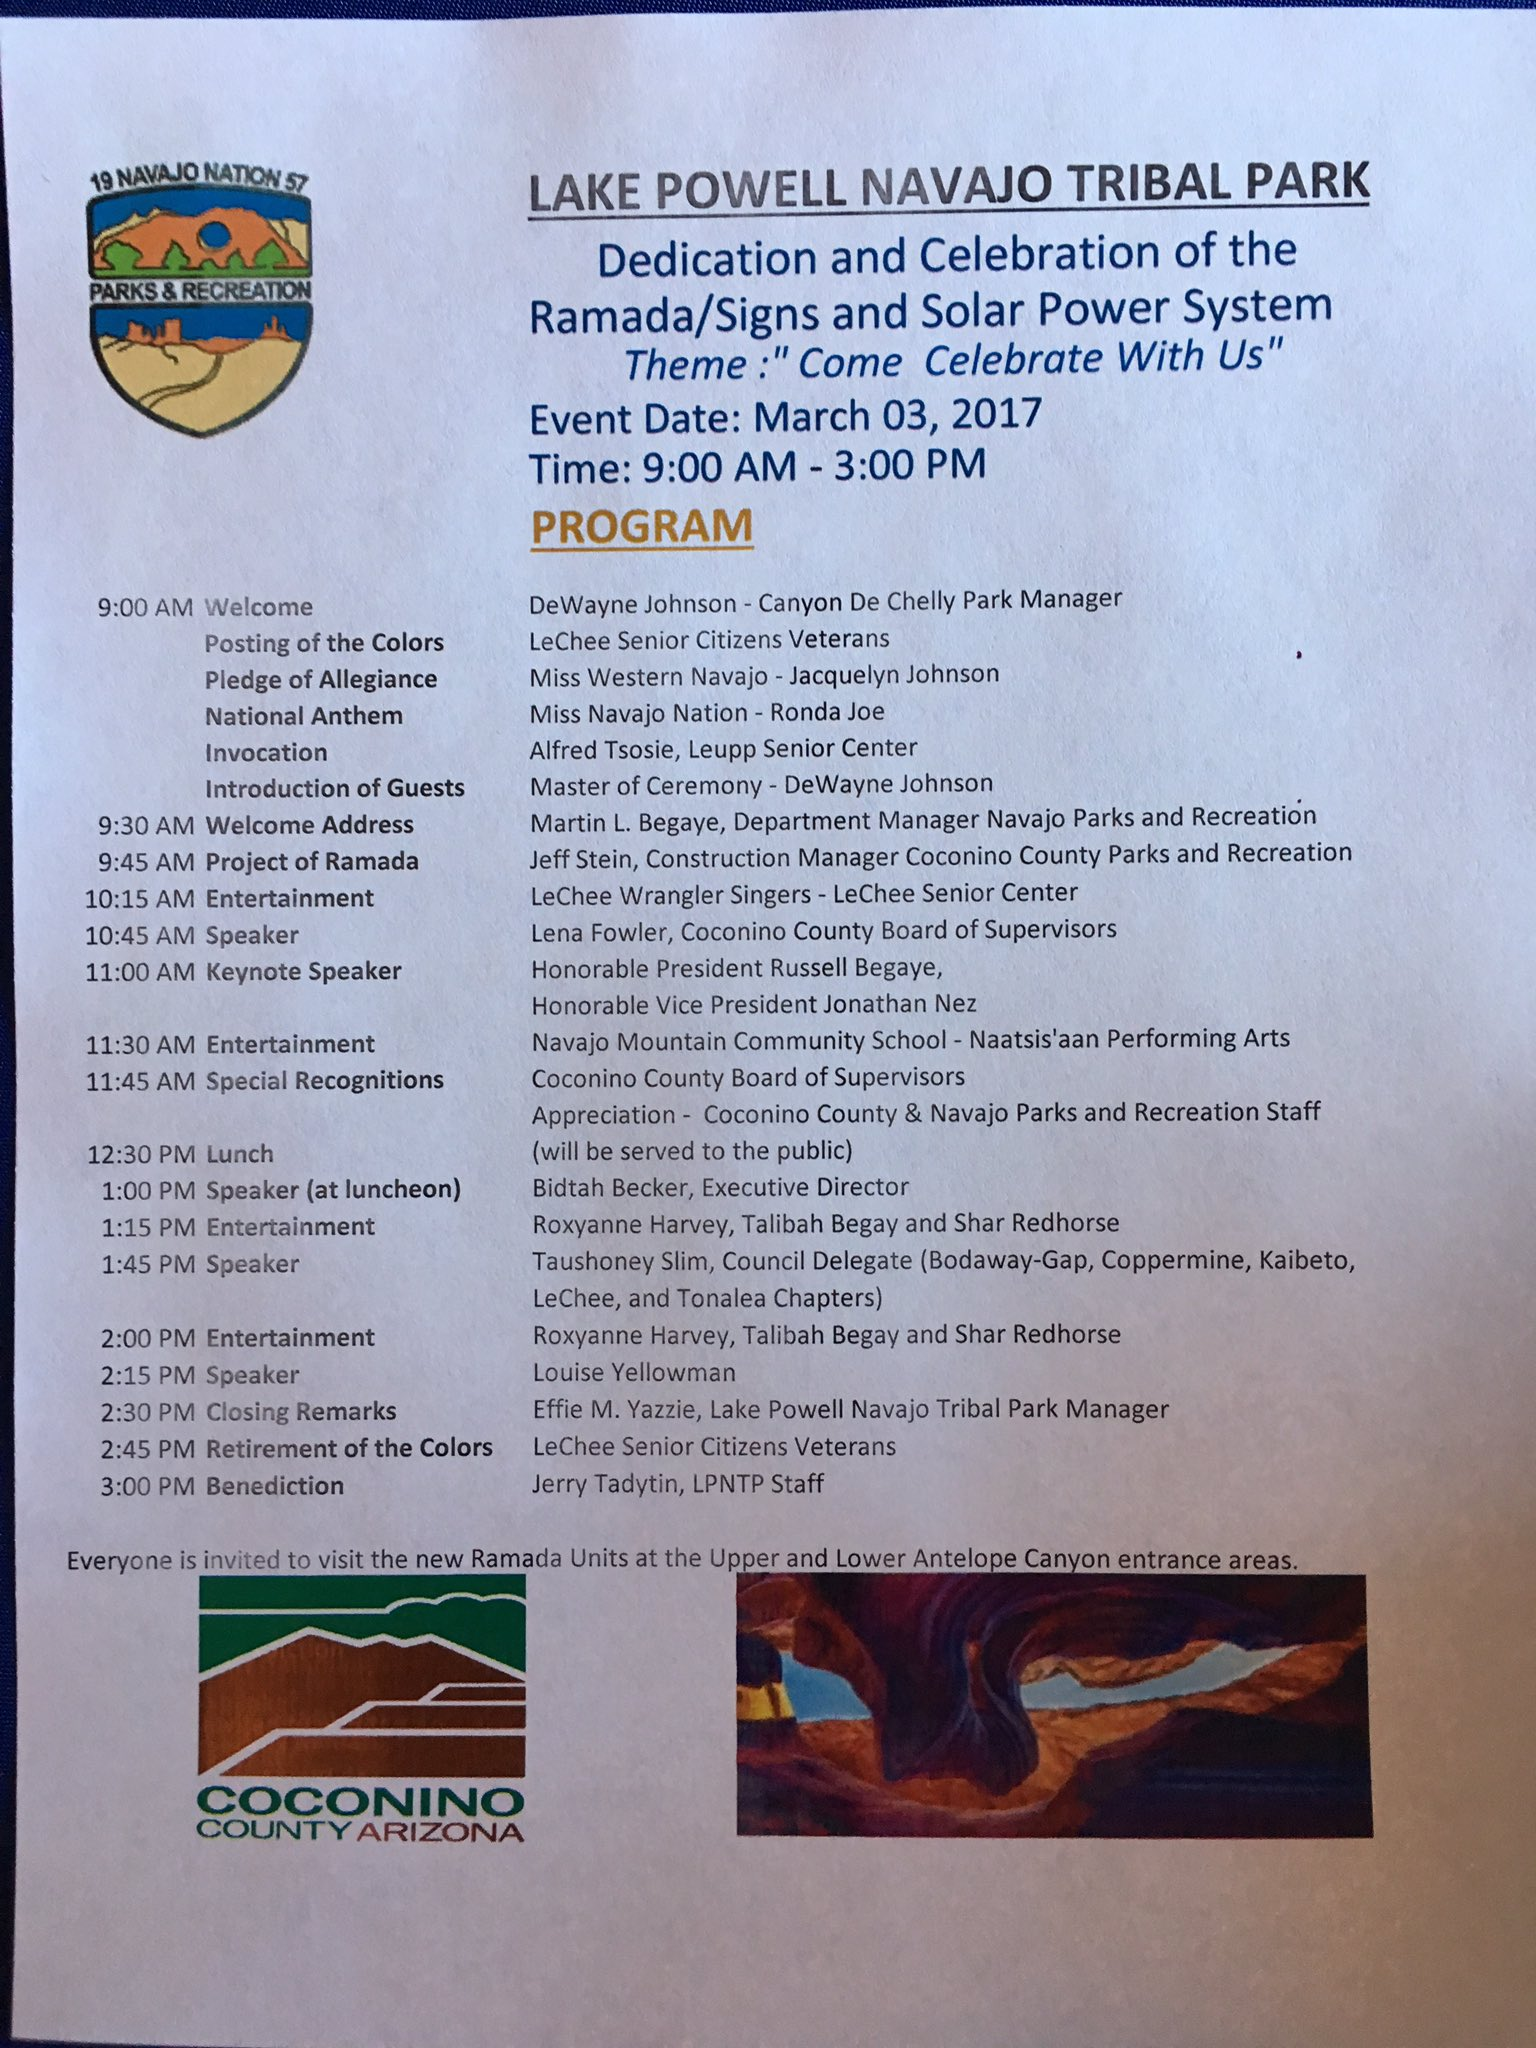 Arizona coconino county leupp - Jonathan M Nez On Twitter This Am We Are At Lake Powell Navajo Tribal Park To Celebrate The New Ramadas Interpretative Signage Solar Panels For The